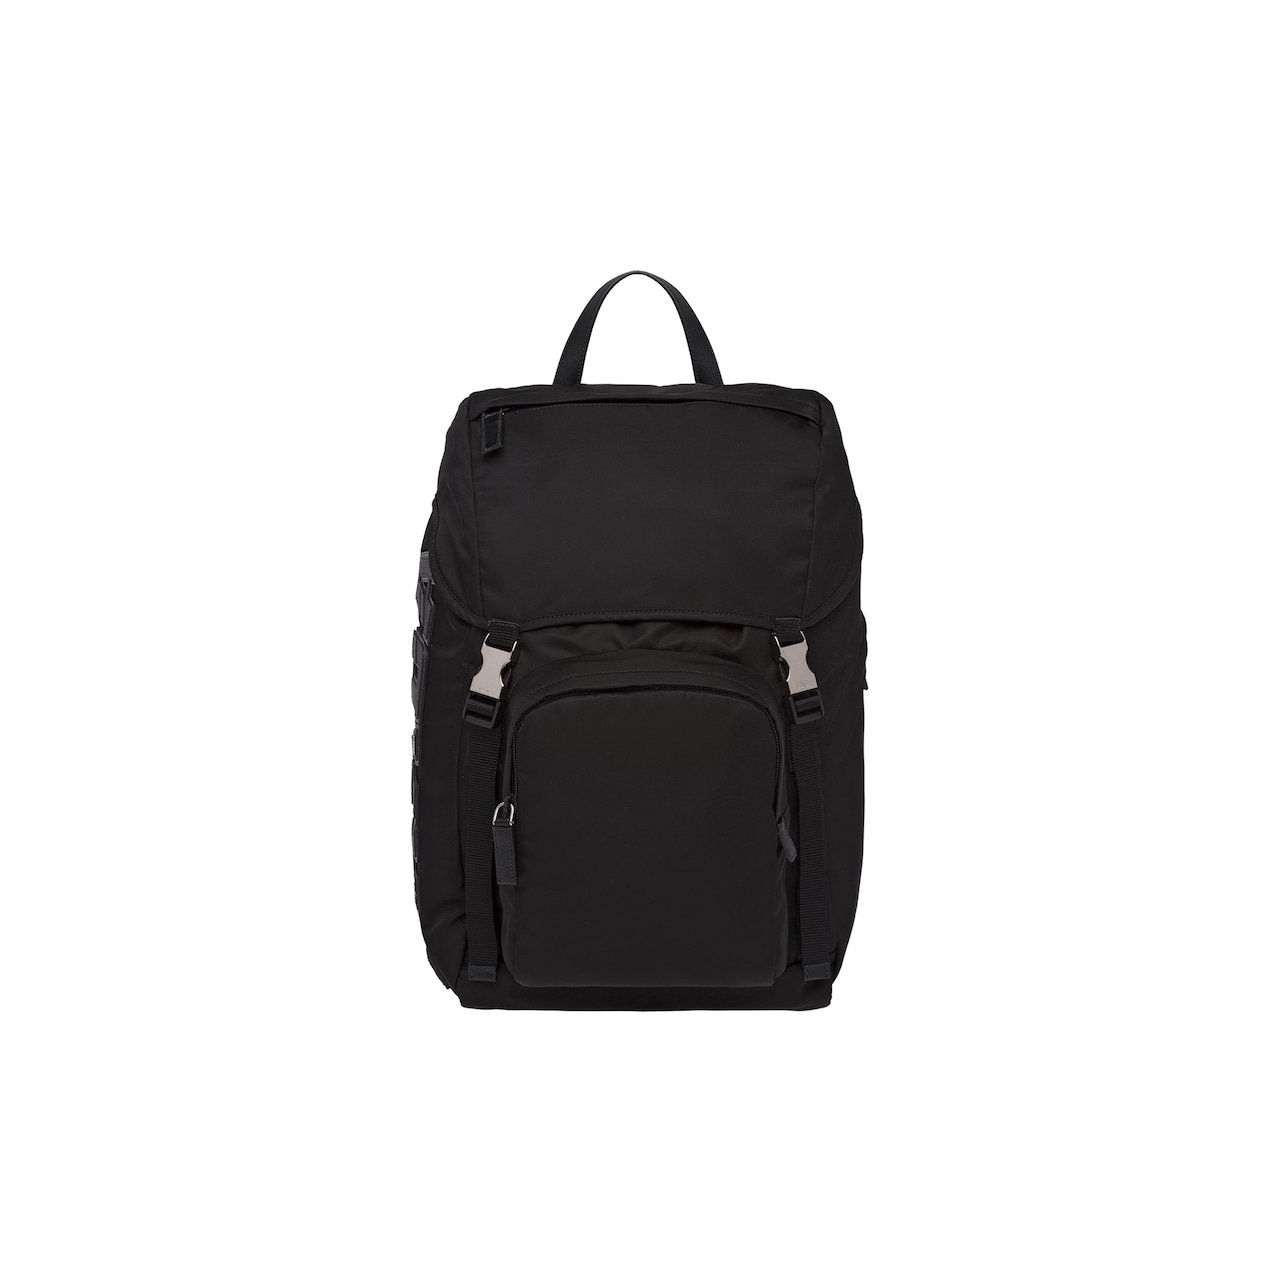 Nylon and Saffiano leather backpack